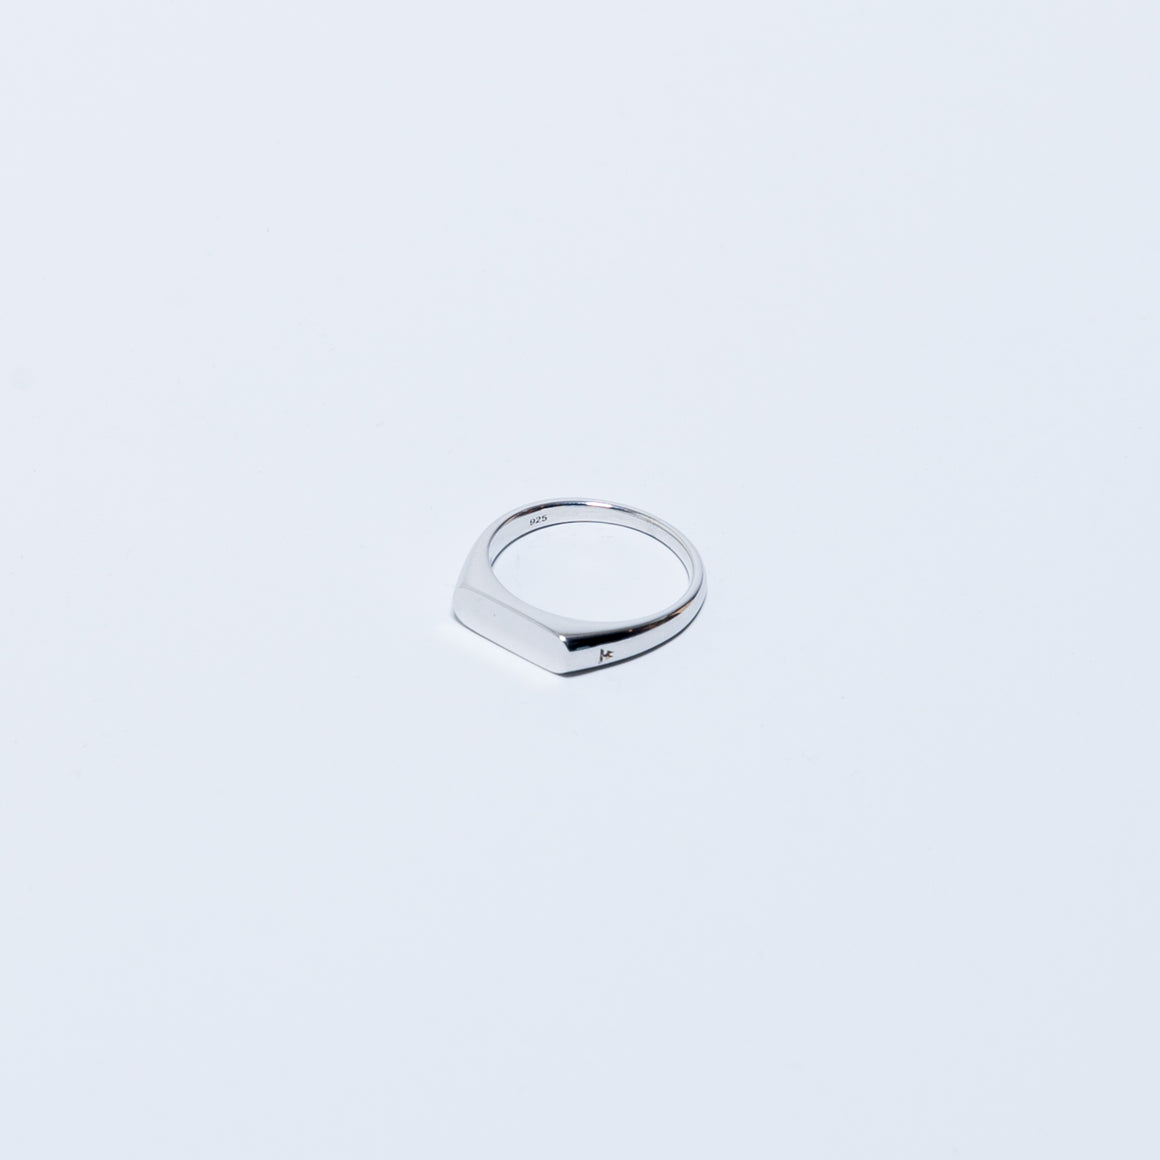 Knut Ring - 925 Sterling Silver - Up There